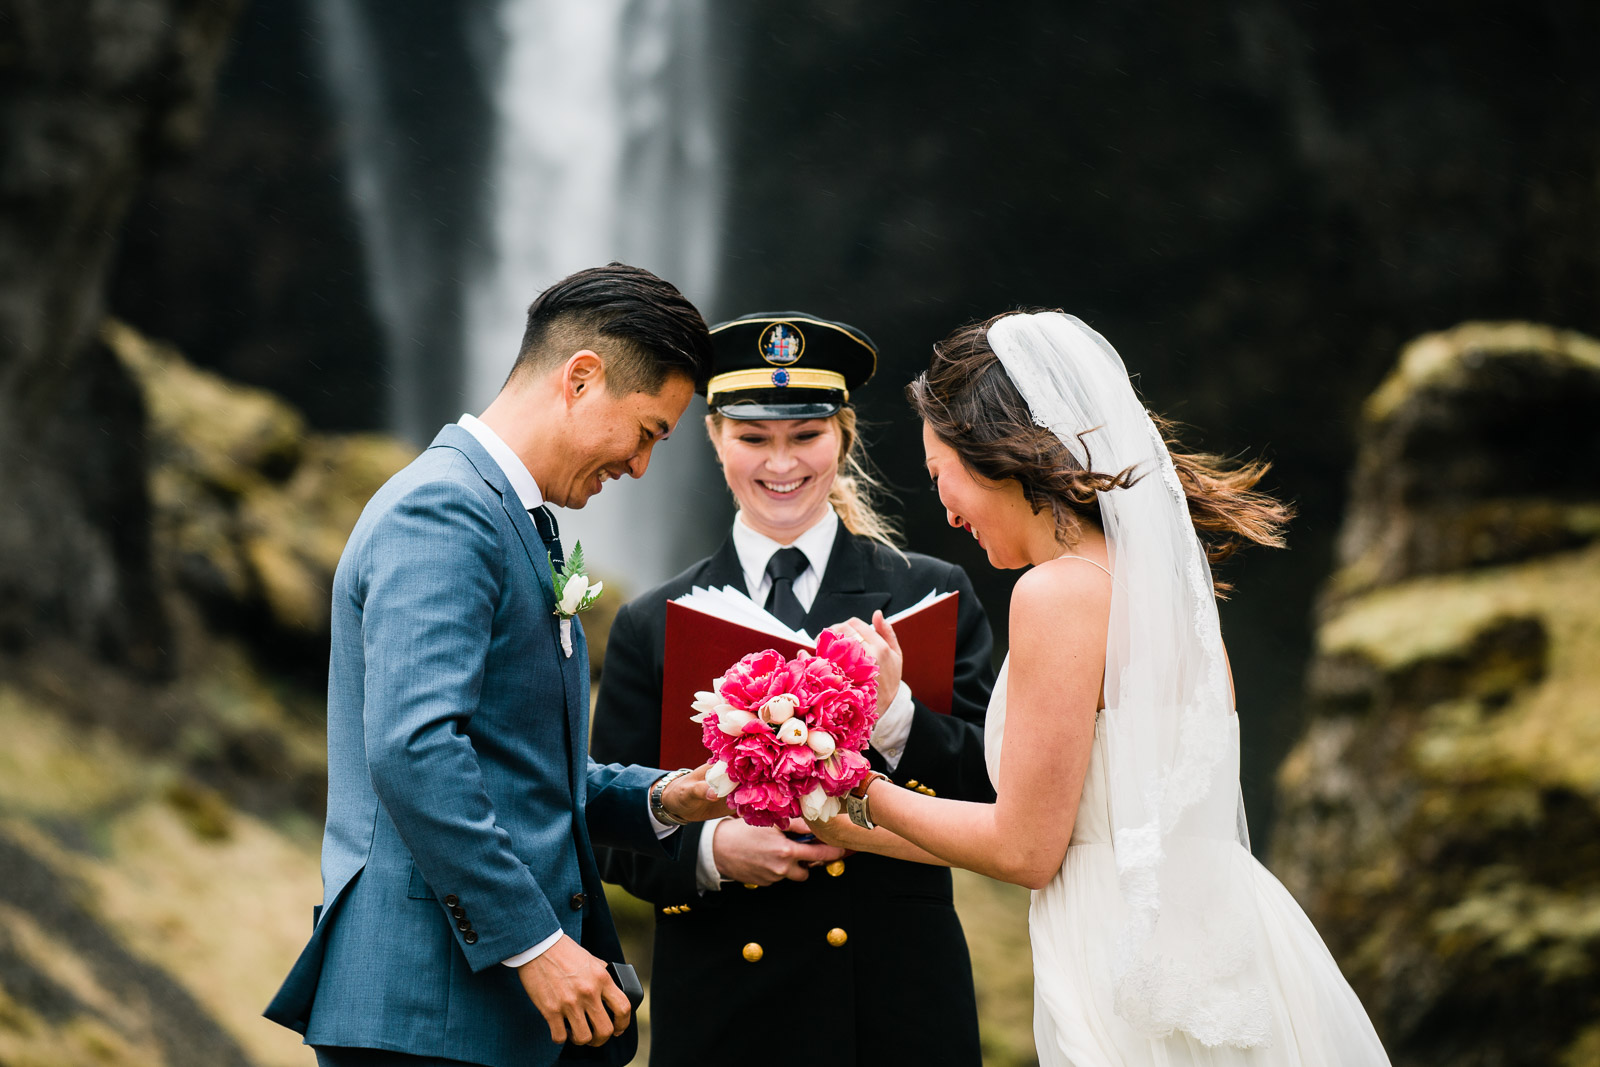 Jackie_Simon_Iceland_Elopement_Weddings_MJ_Studios-10